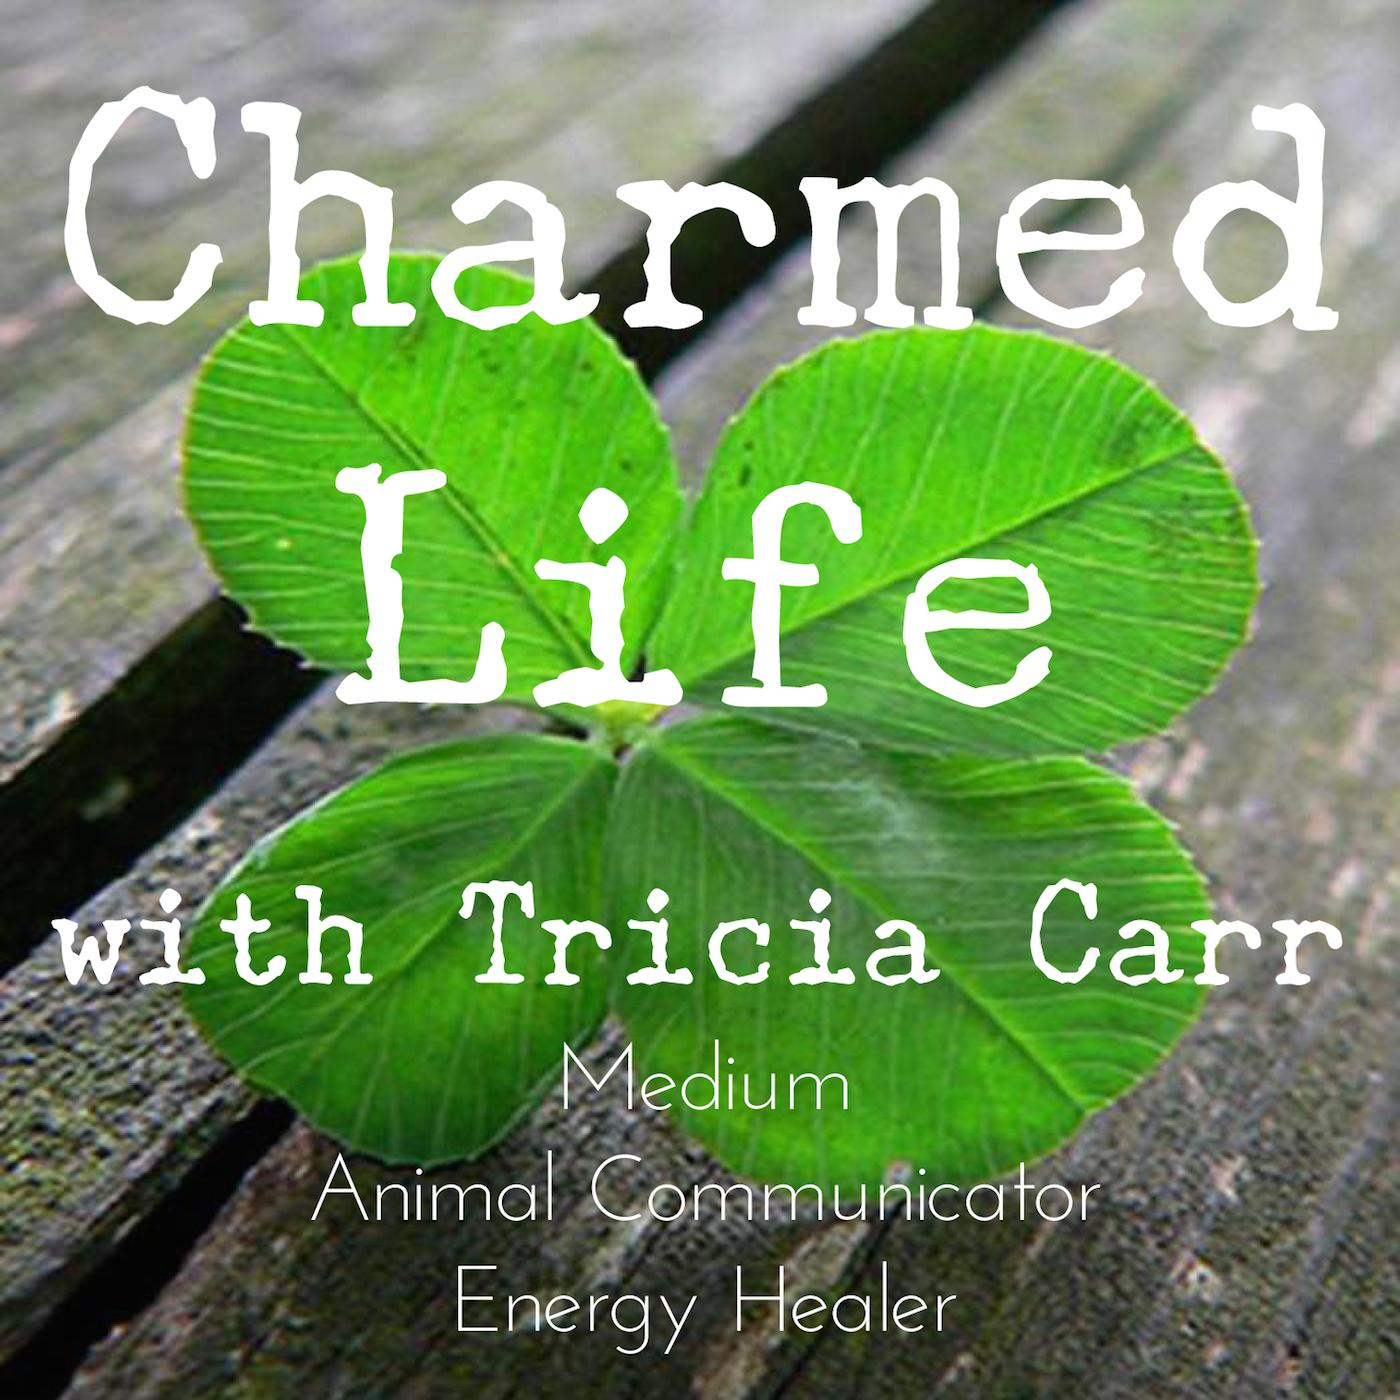 Charmed Radio Show | Listen Free on Castbox